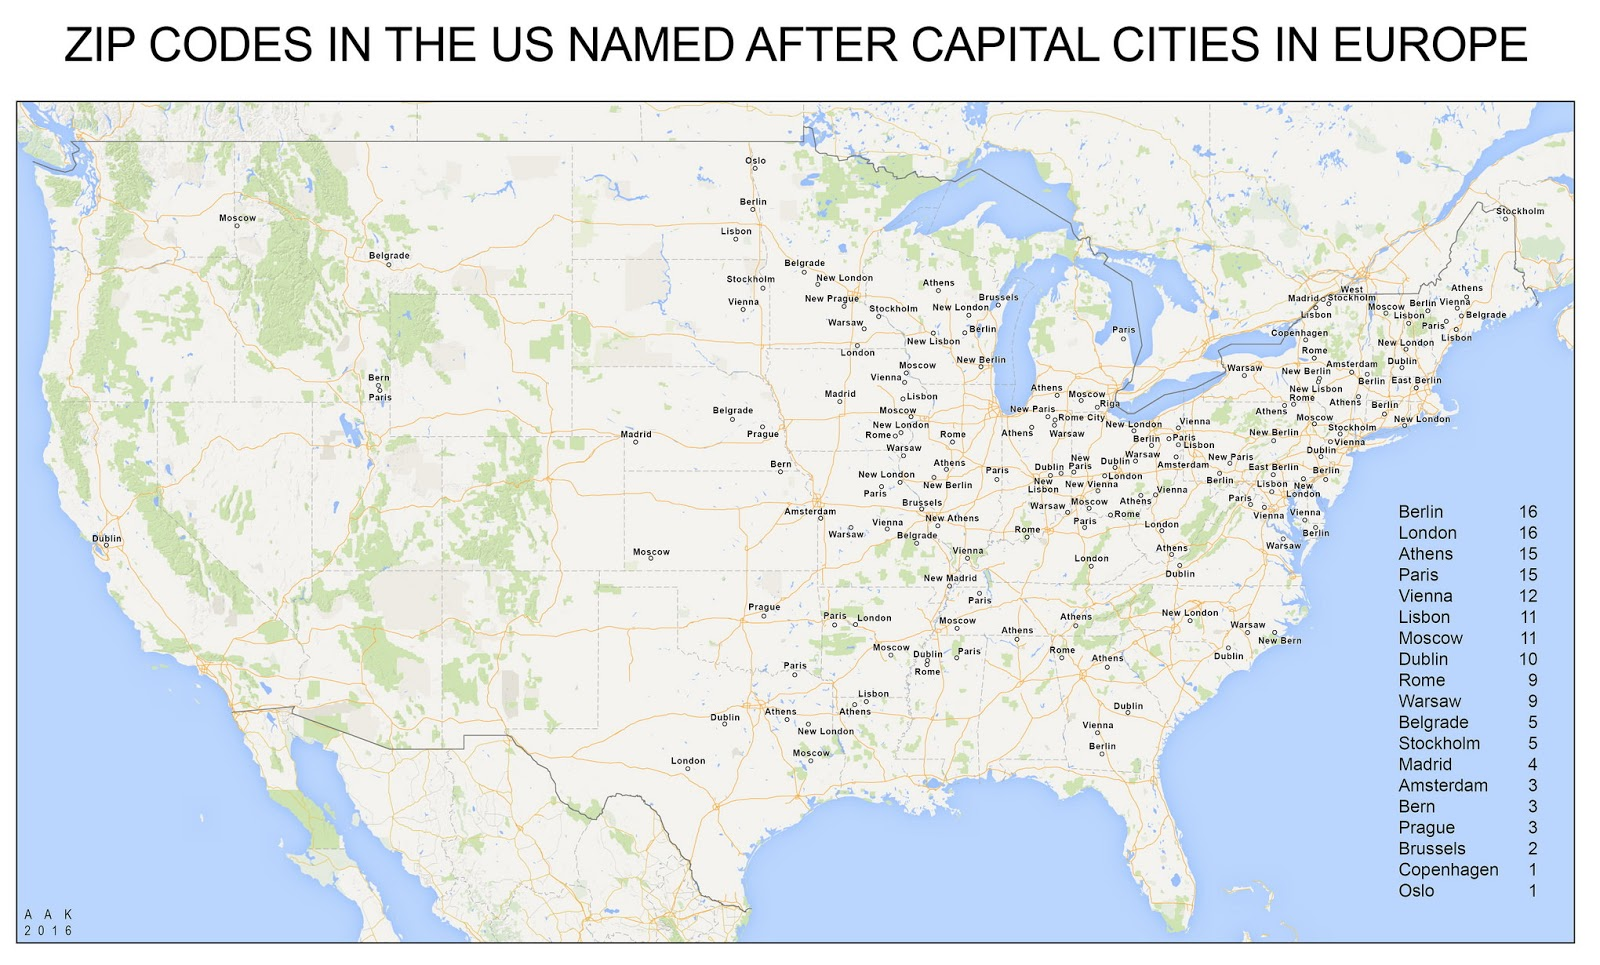 Places in the U.S. named after capital cities in Europe